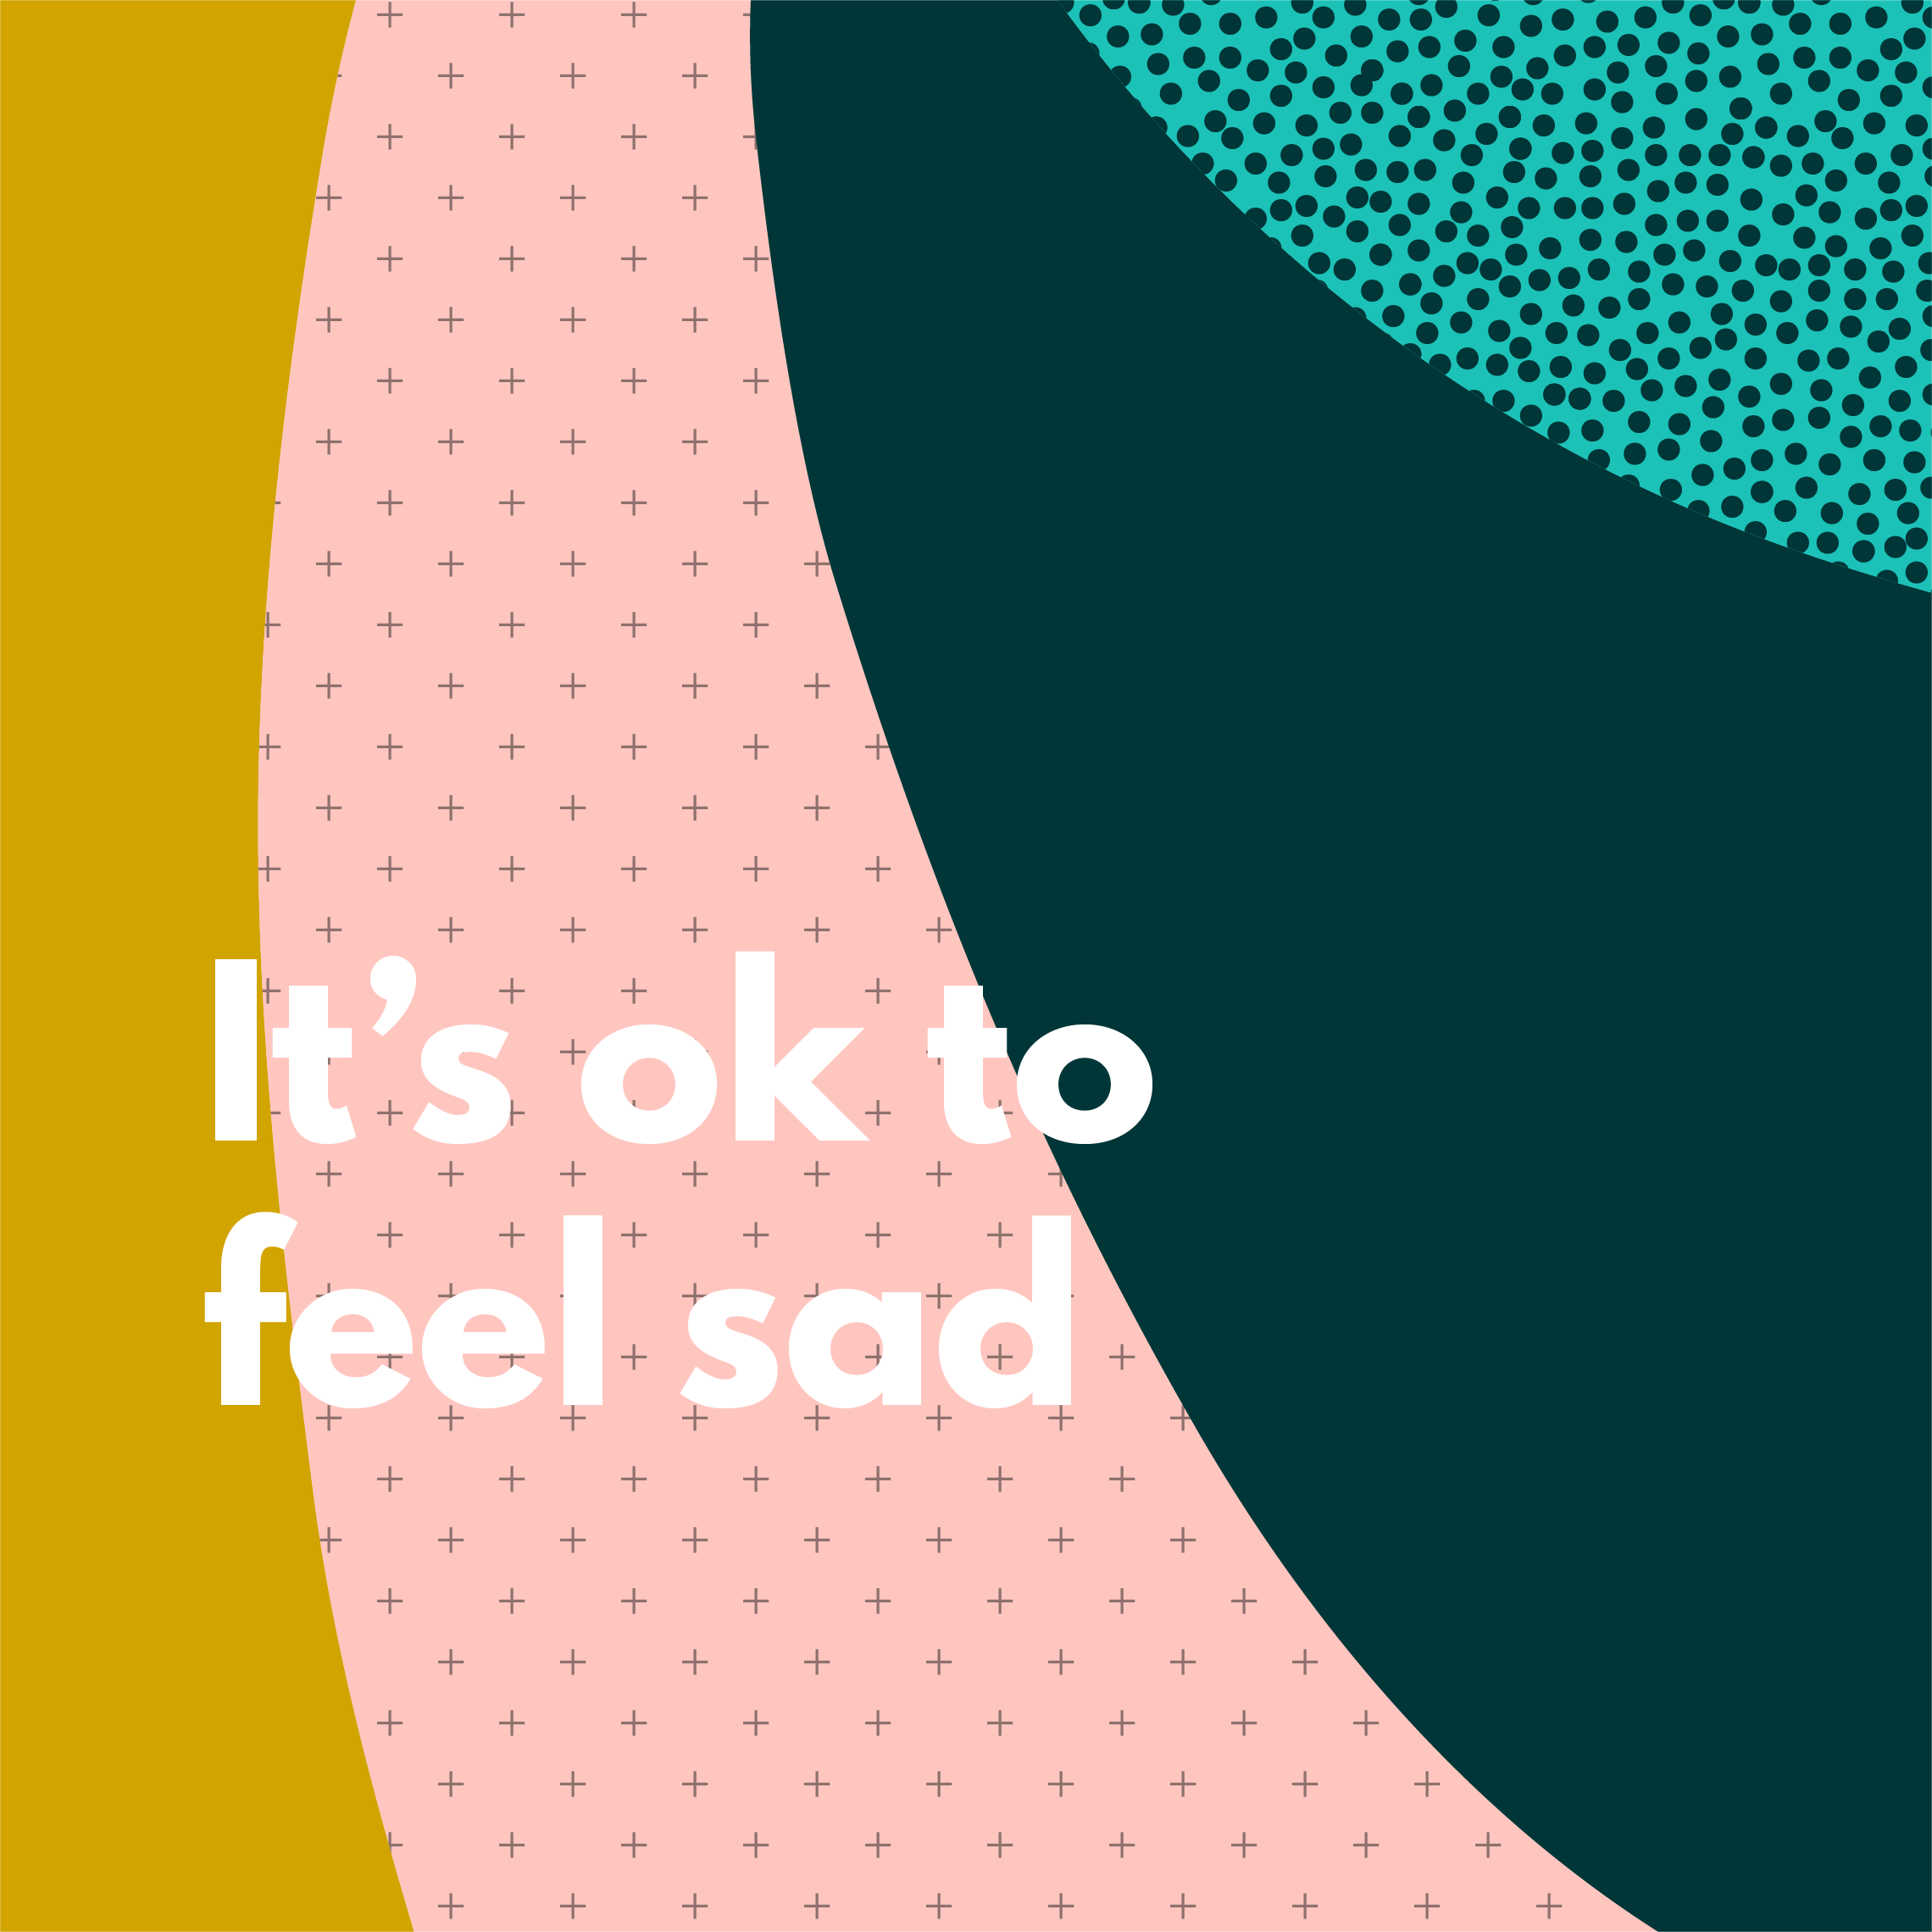 It's ok to feel sad